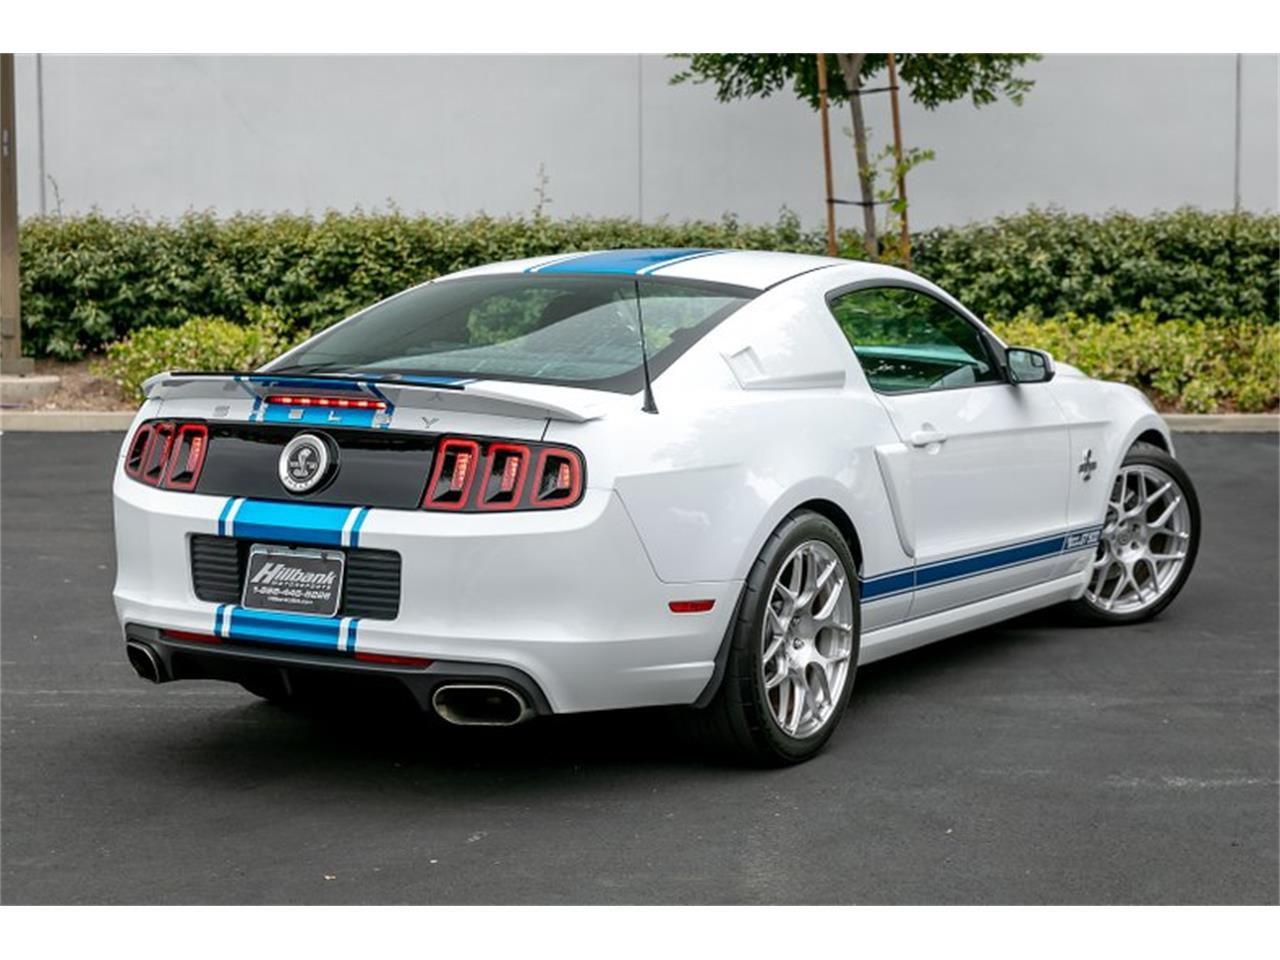 Large Picture of '14 Shelby GT500 Super Snake located in Irvine California - $109,950.00 - QB1K